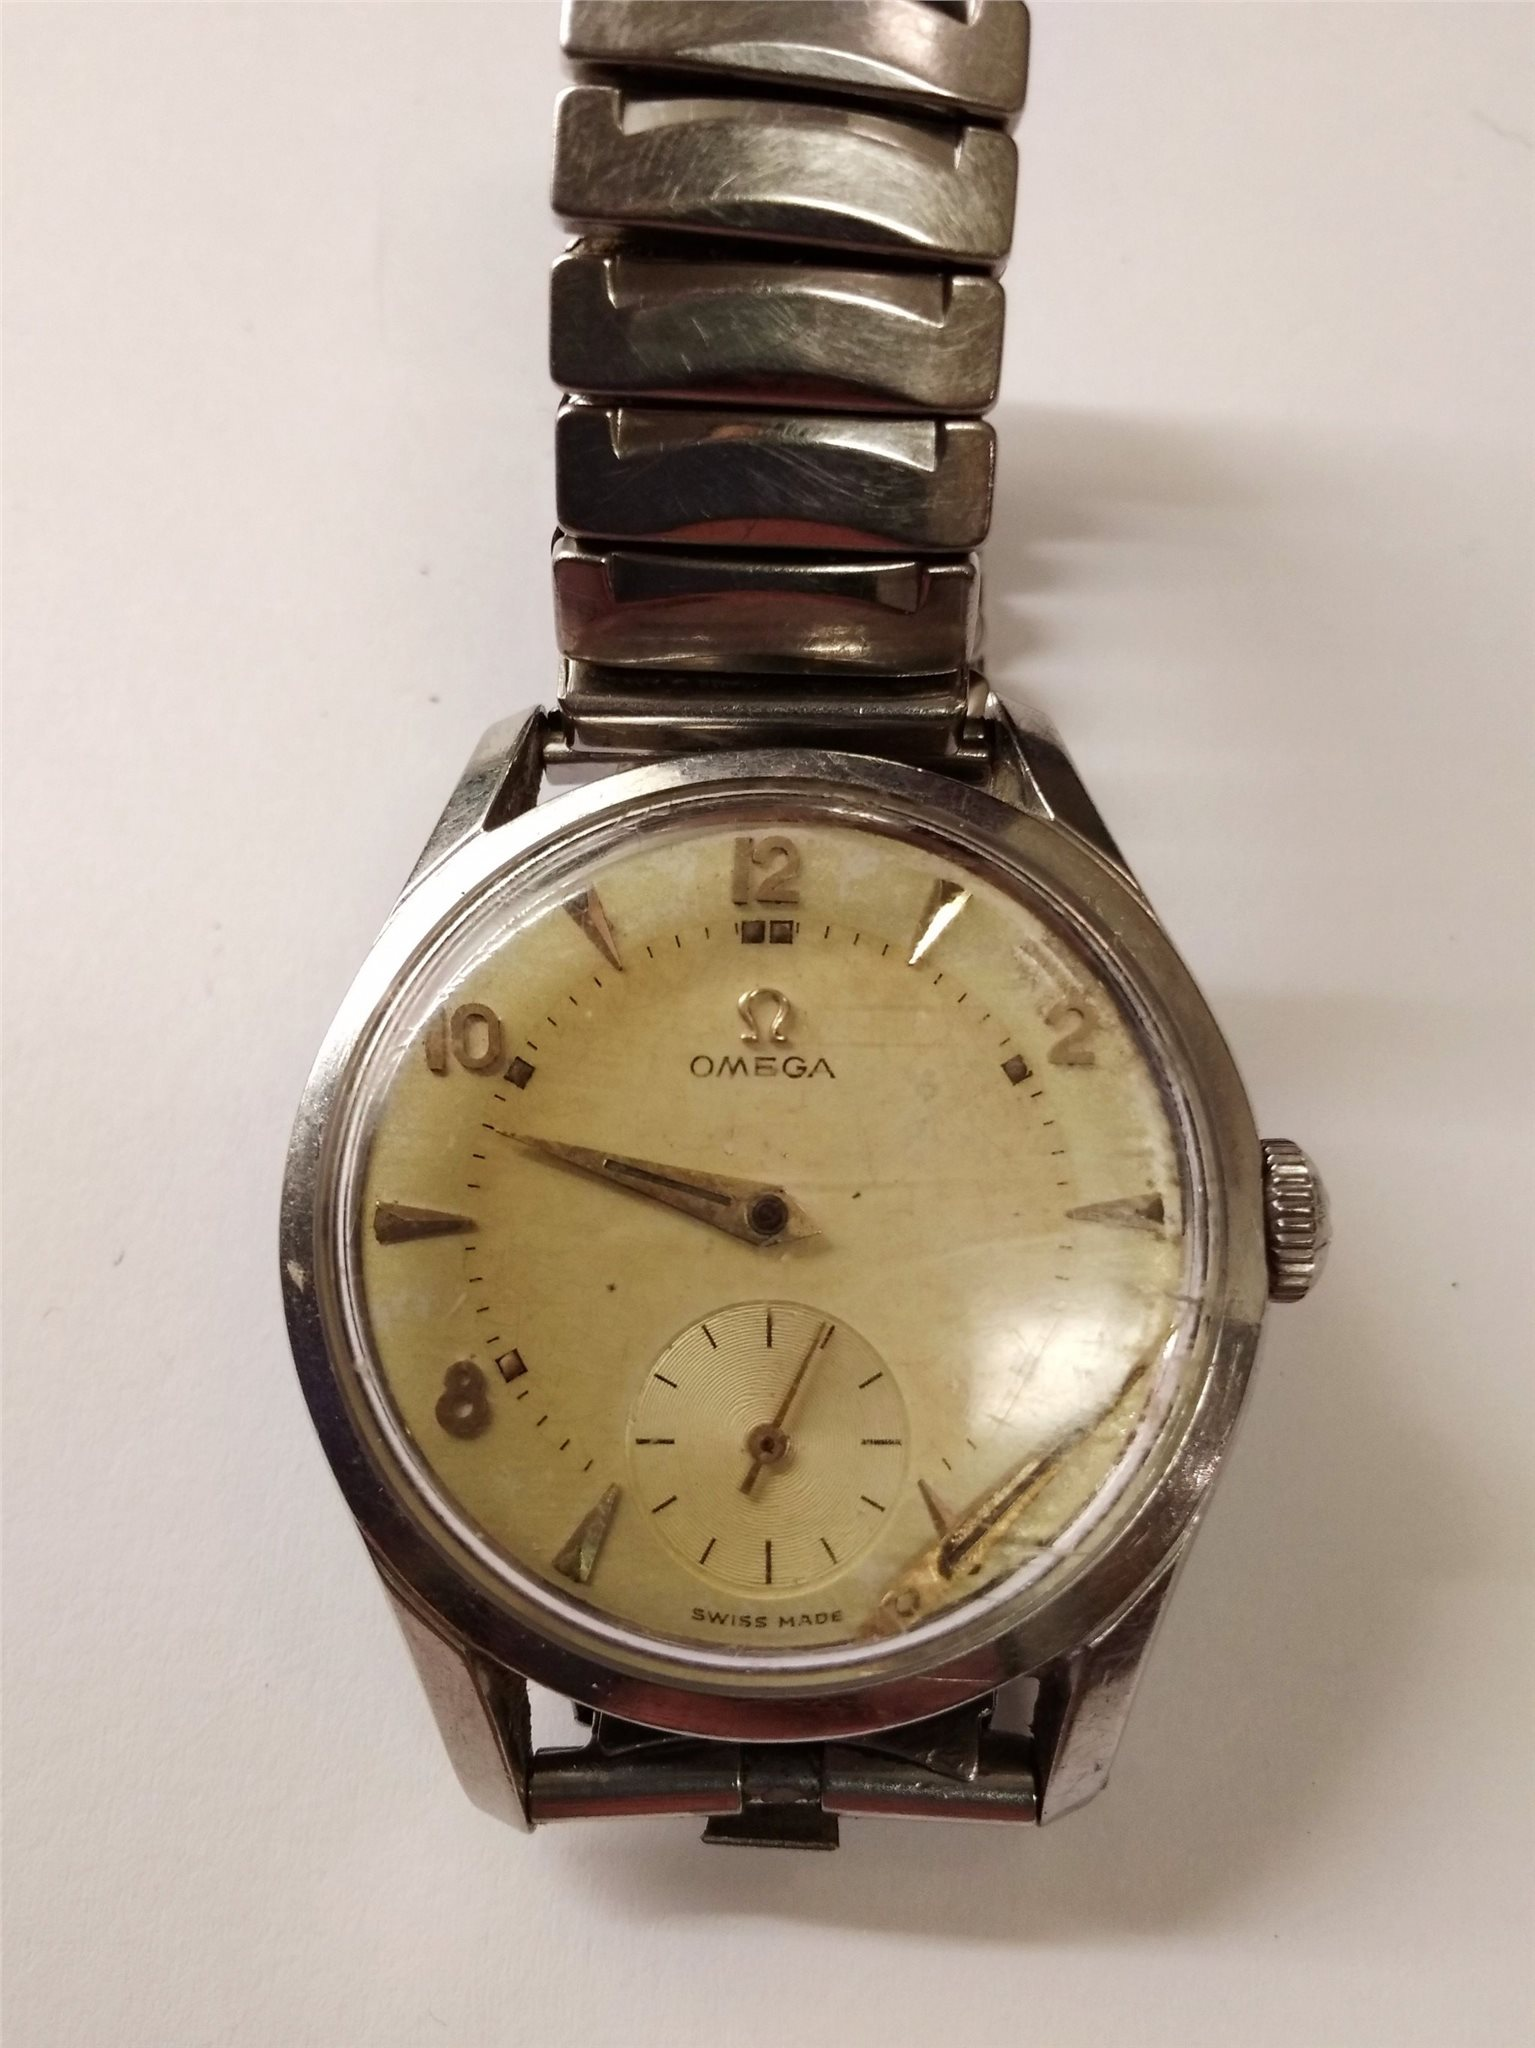 Omega swiss made (reparationsobjekt)